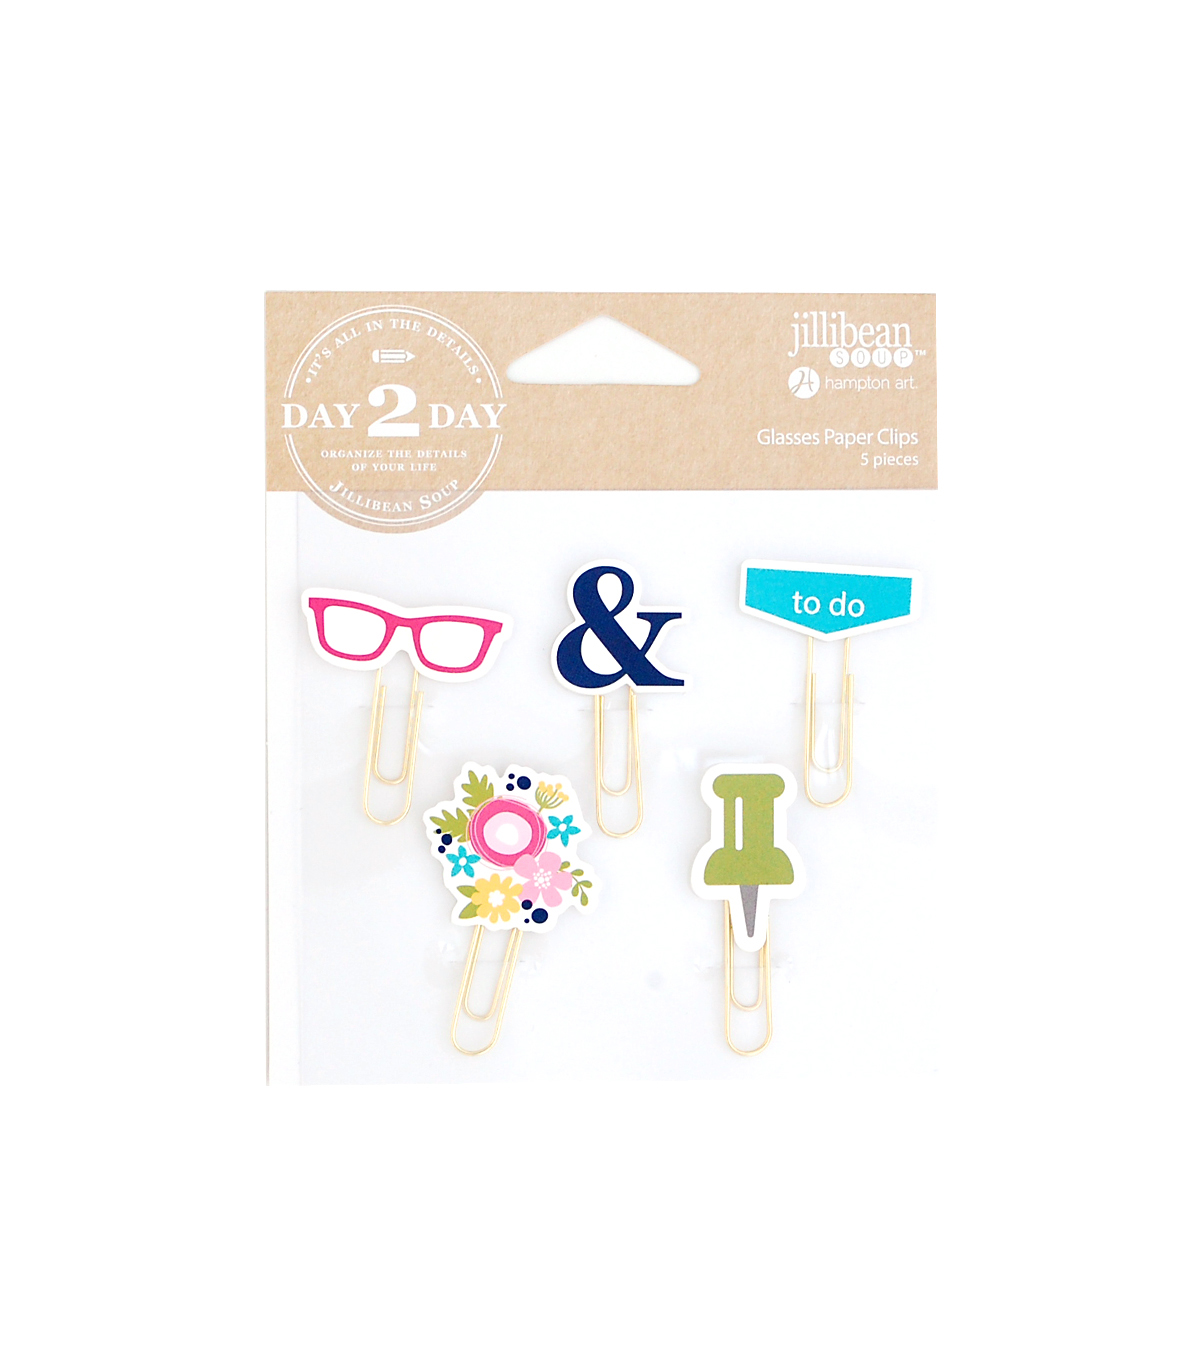 Jillibean Soup Day 2 Day 5 Pack Paperclips-Glasses